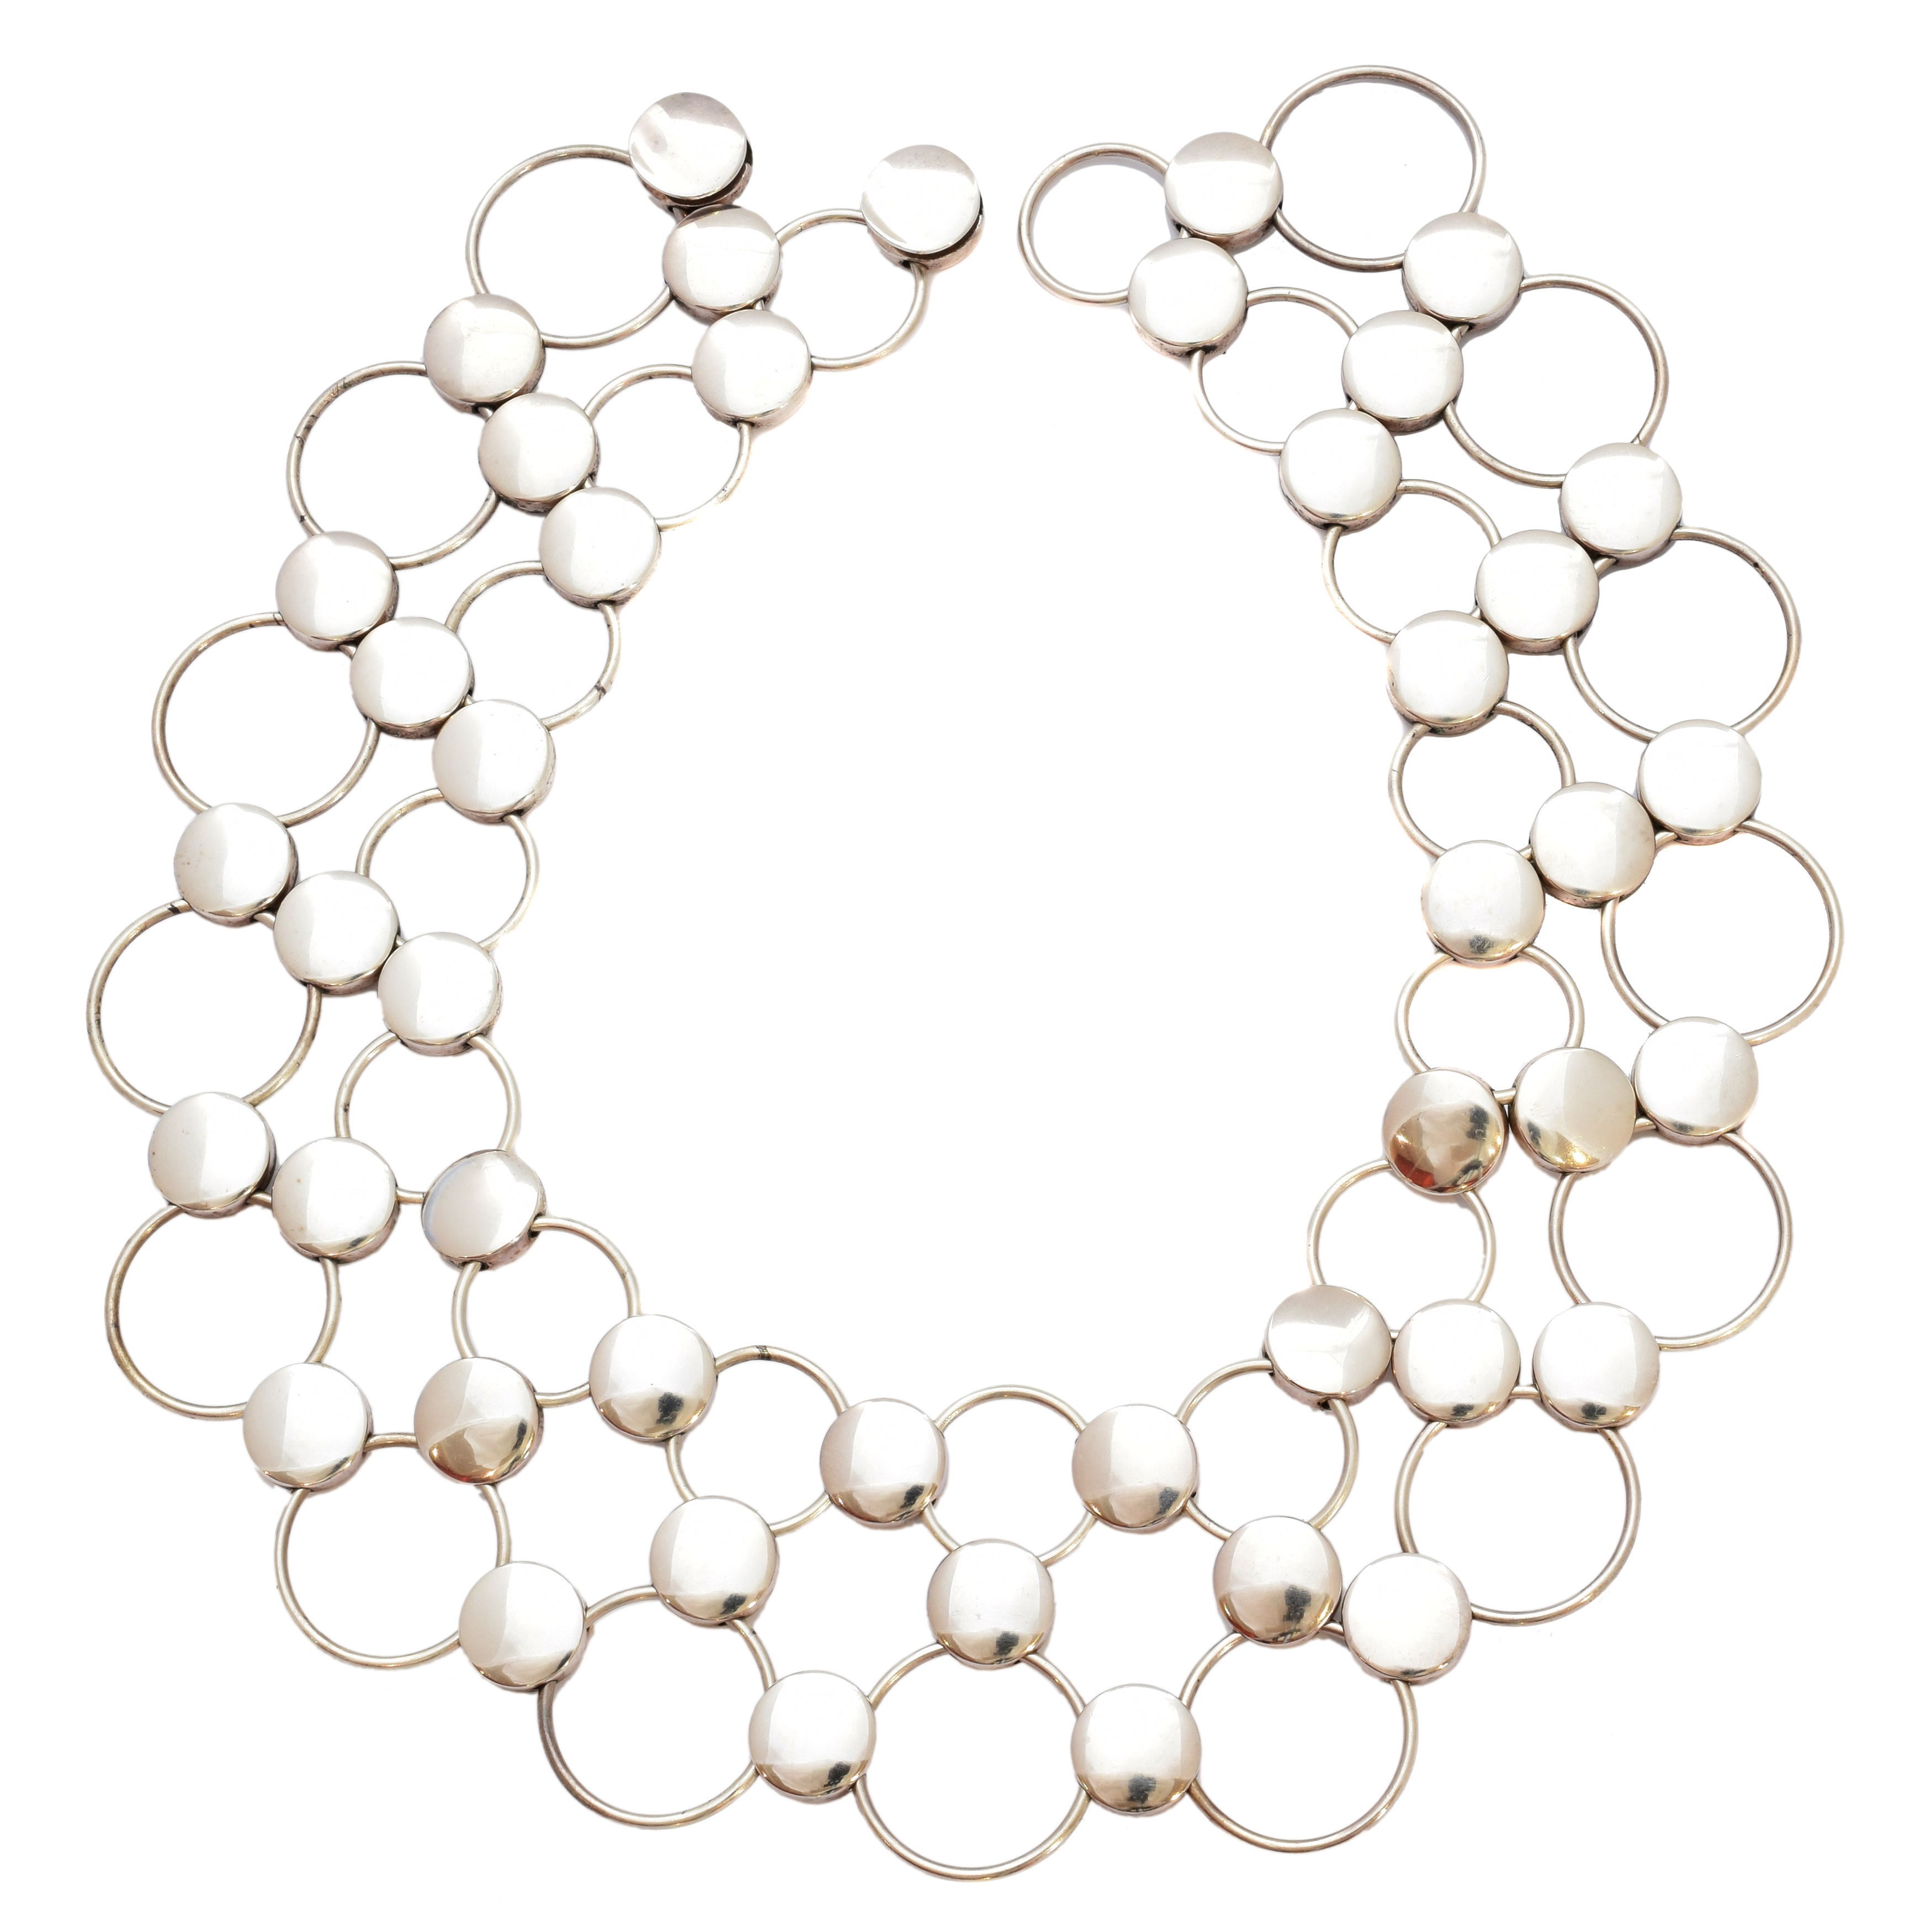 A Georg Jensen collar, pattern no. 464, designed by Regitze Overgaard for Georg Jensen, sold for £800